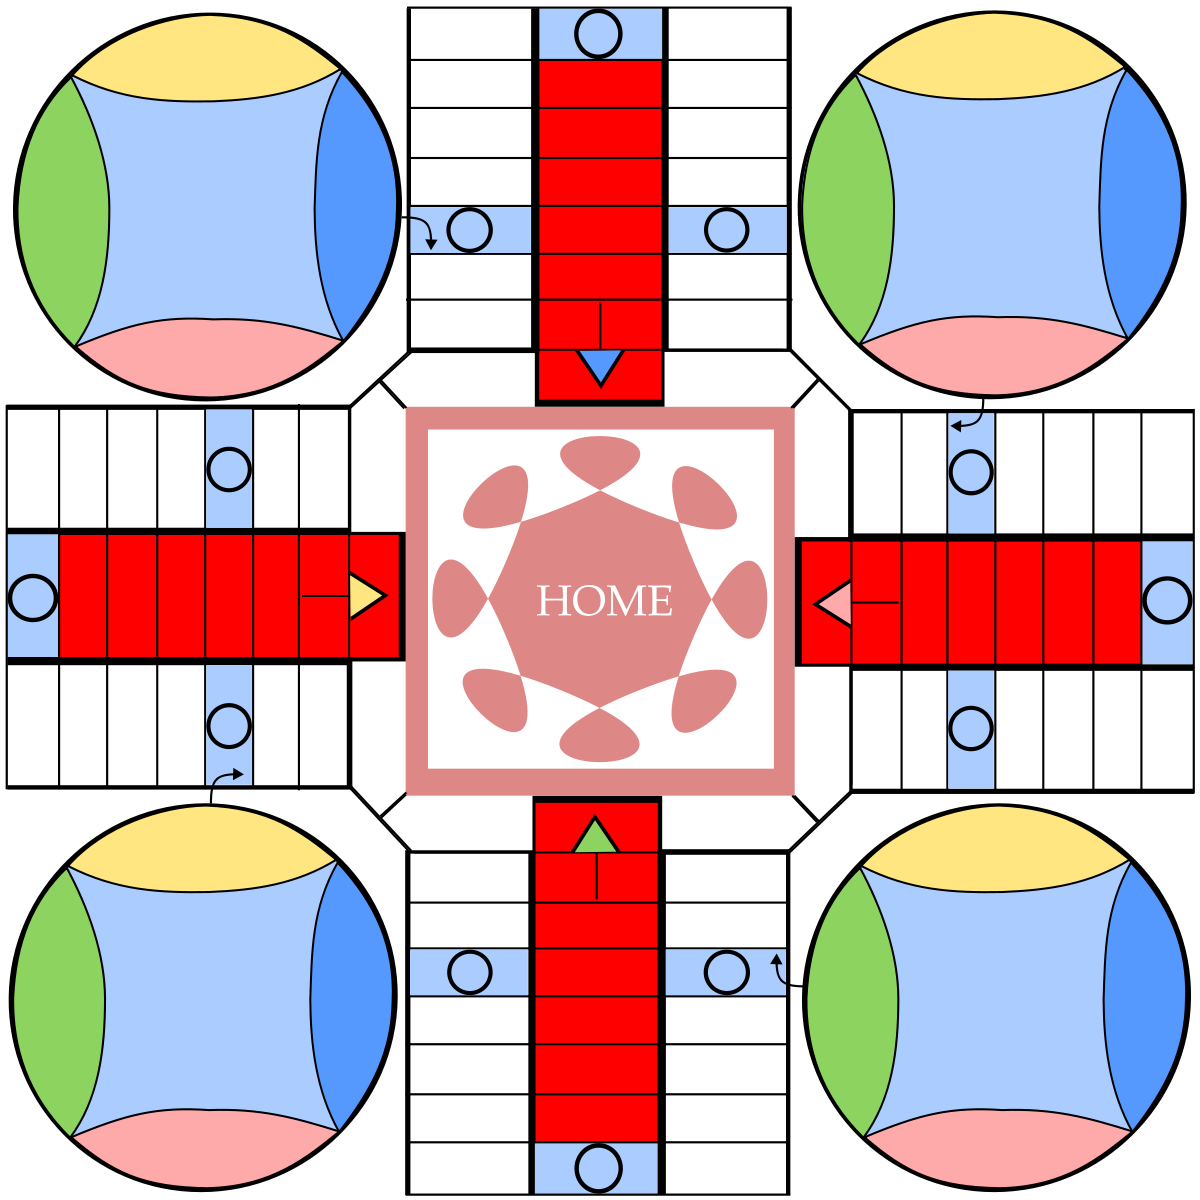 Parcheesi. Vocabulary games, Best family board games